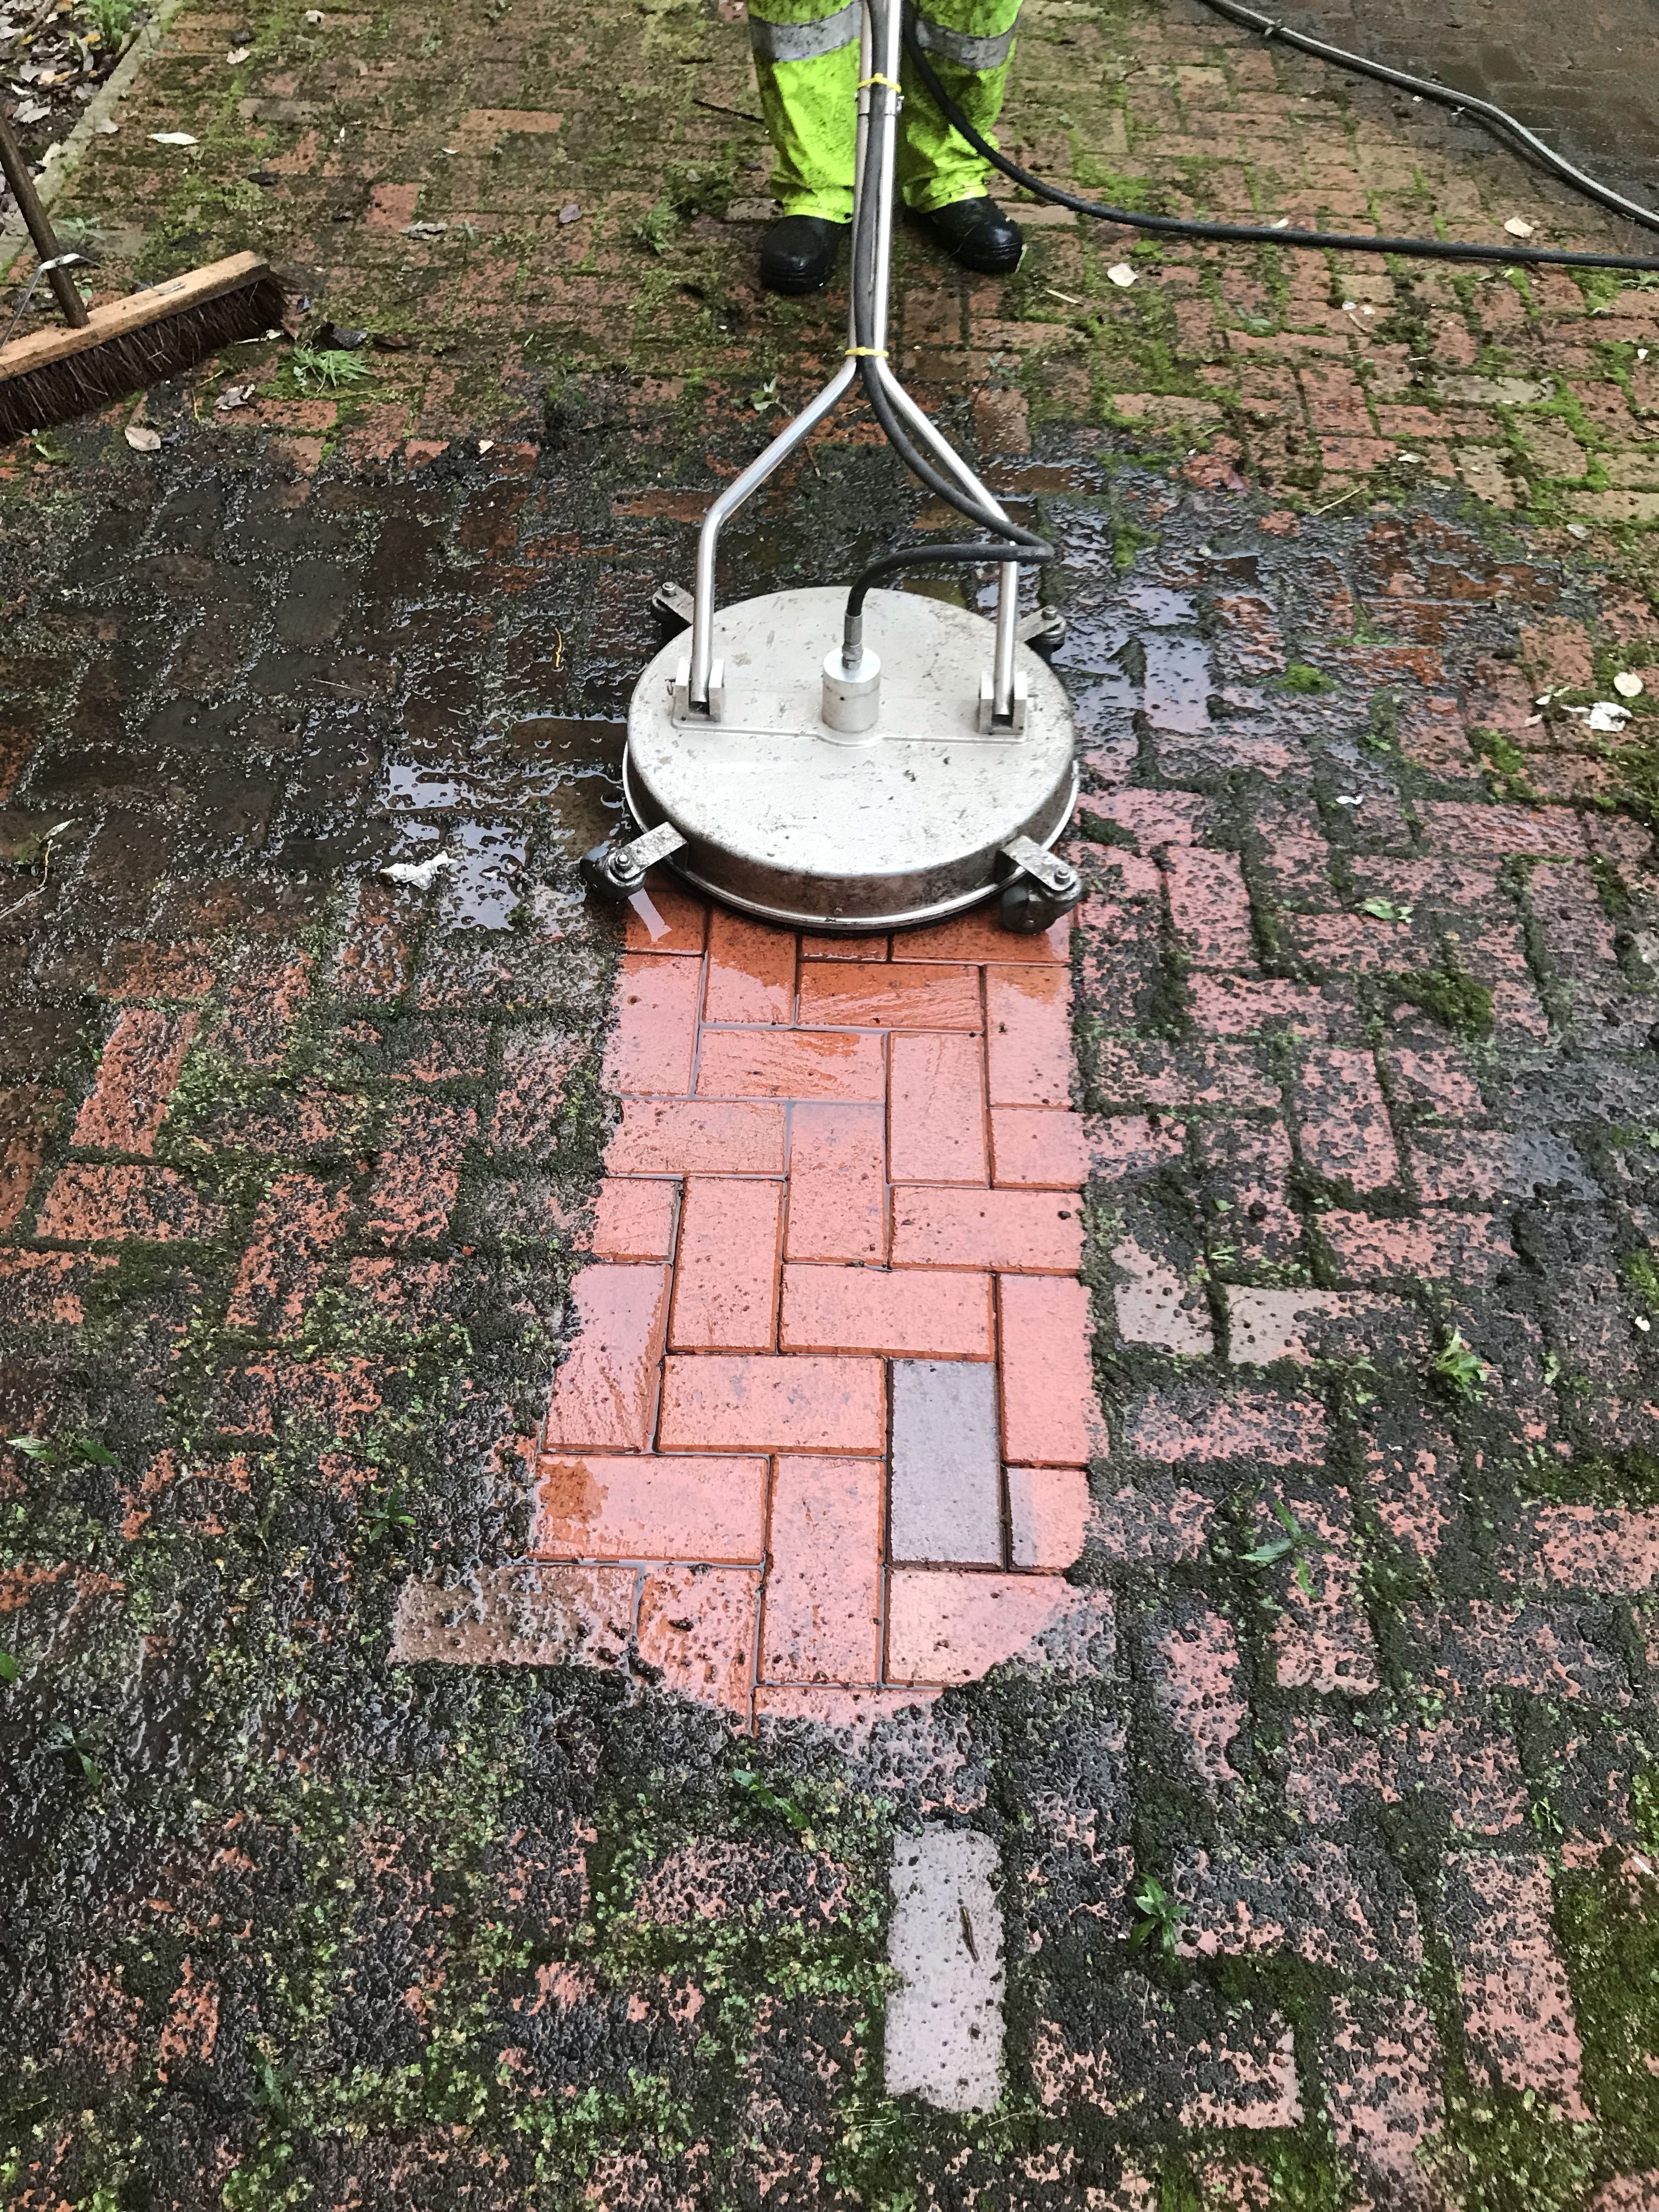 Before and after our machine tackles block paving cleaning